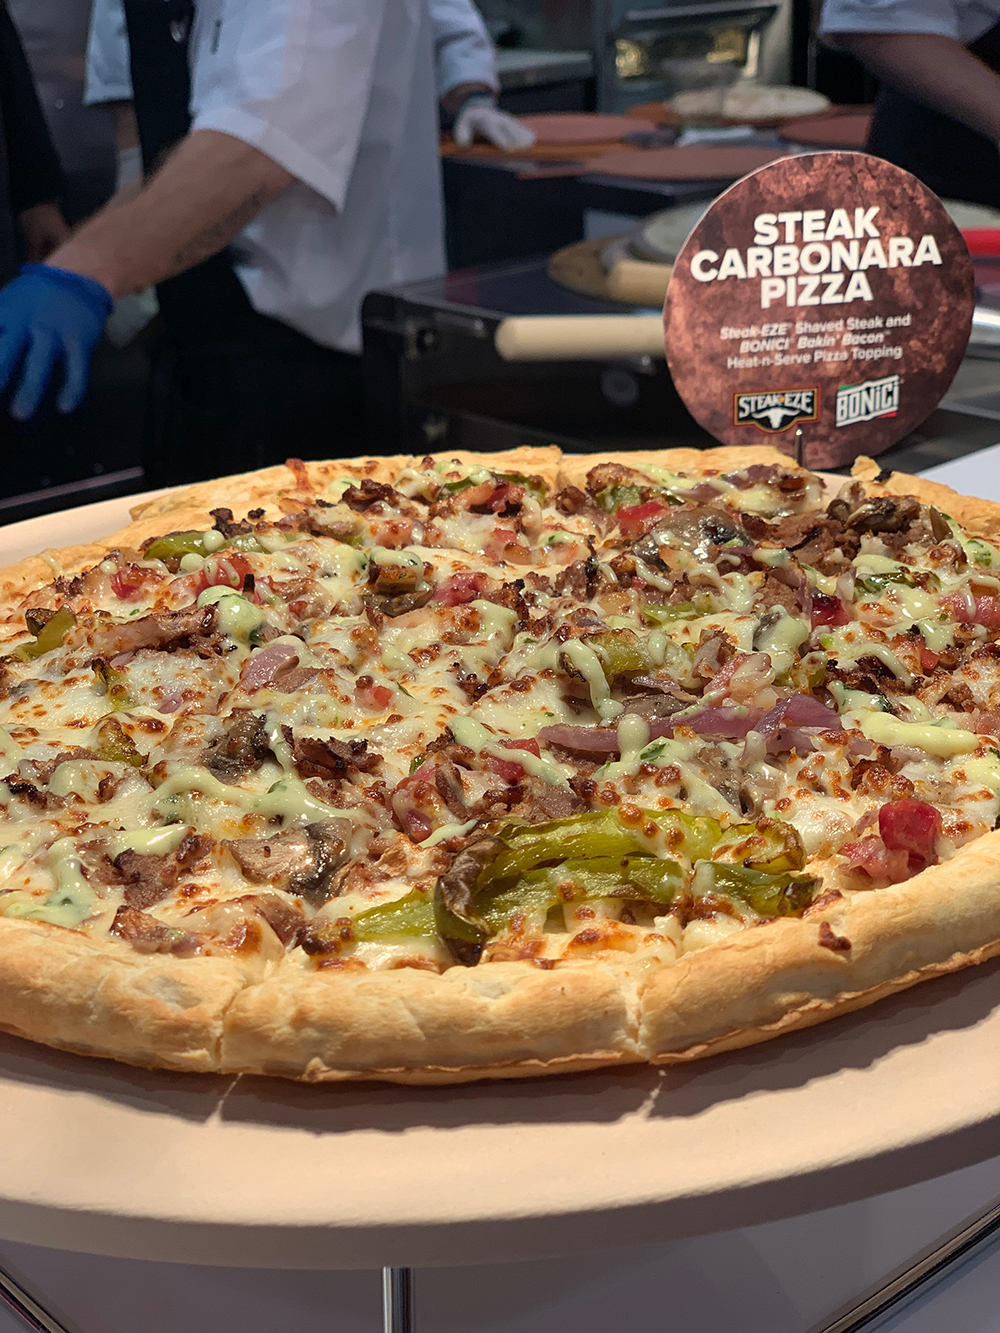 Pizza Expo 2019 Tyson Foodservice Steak Carbonara Pizza Steak-EZE and Bonici